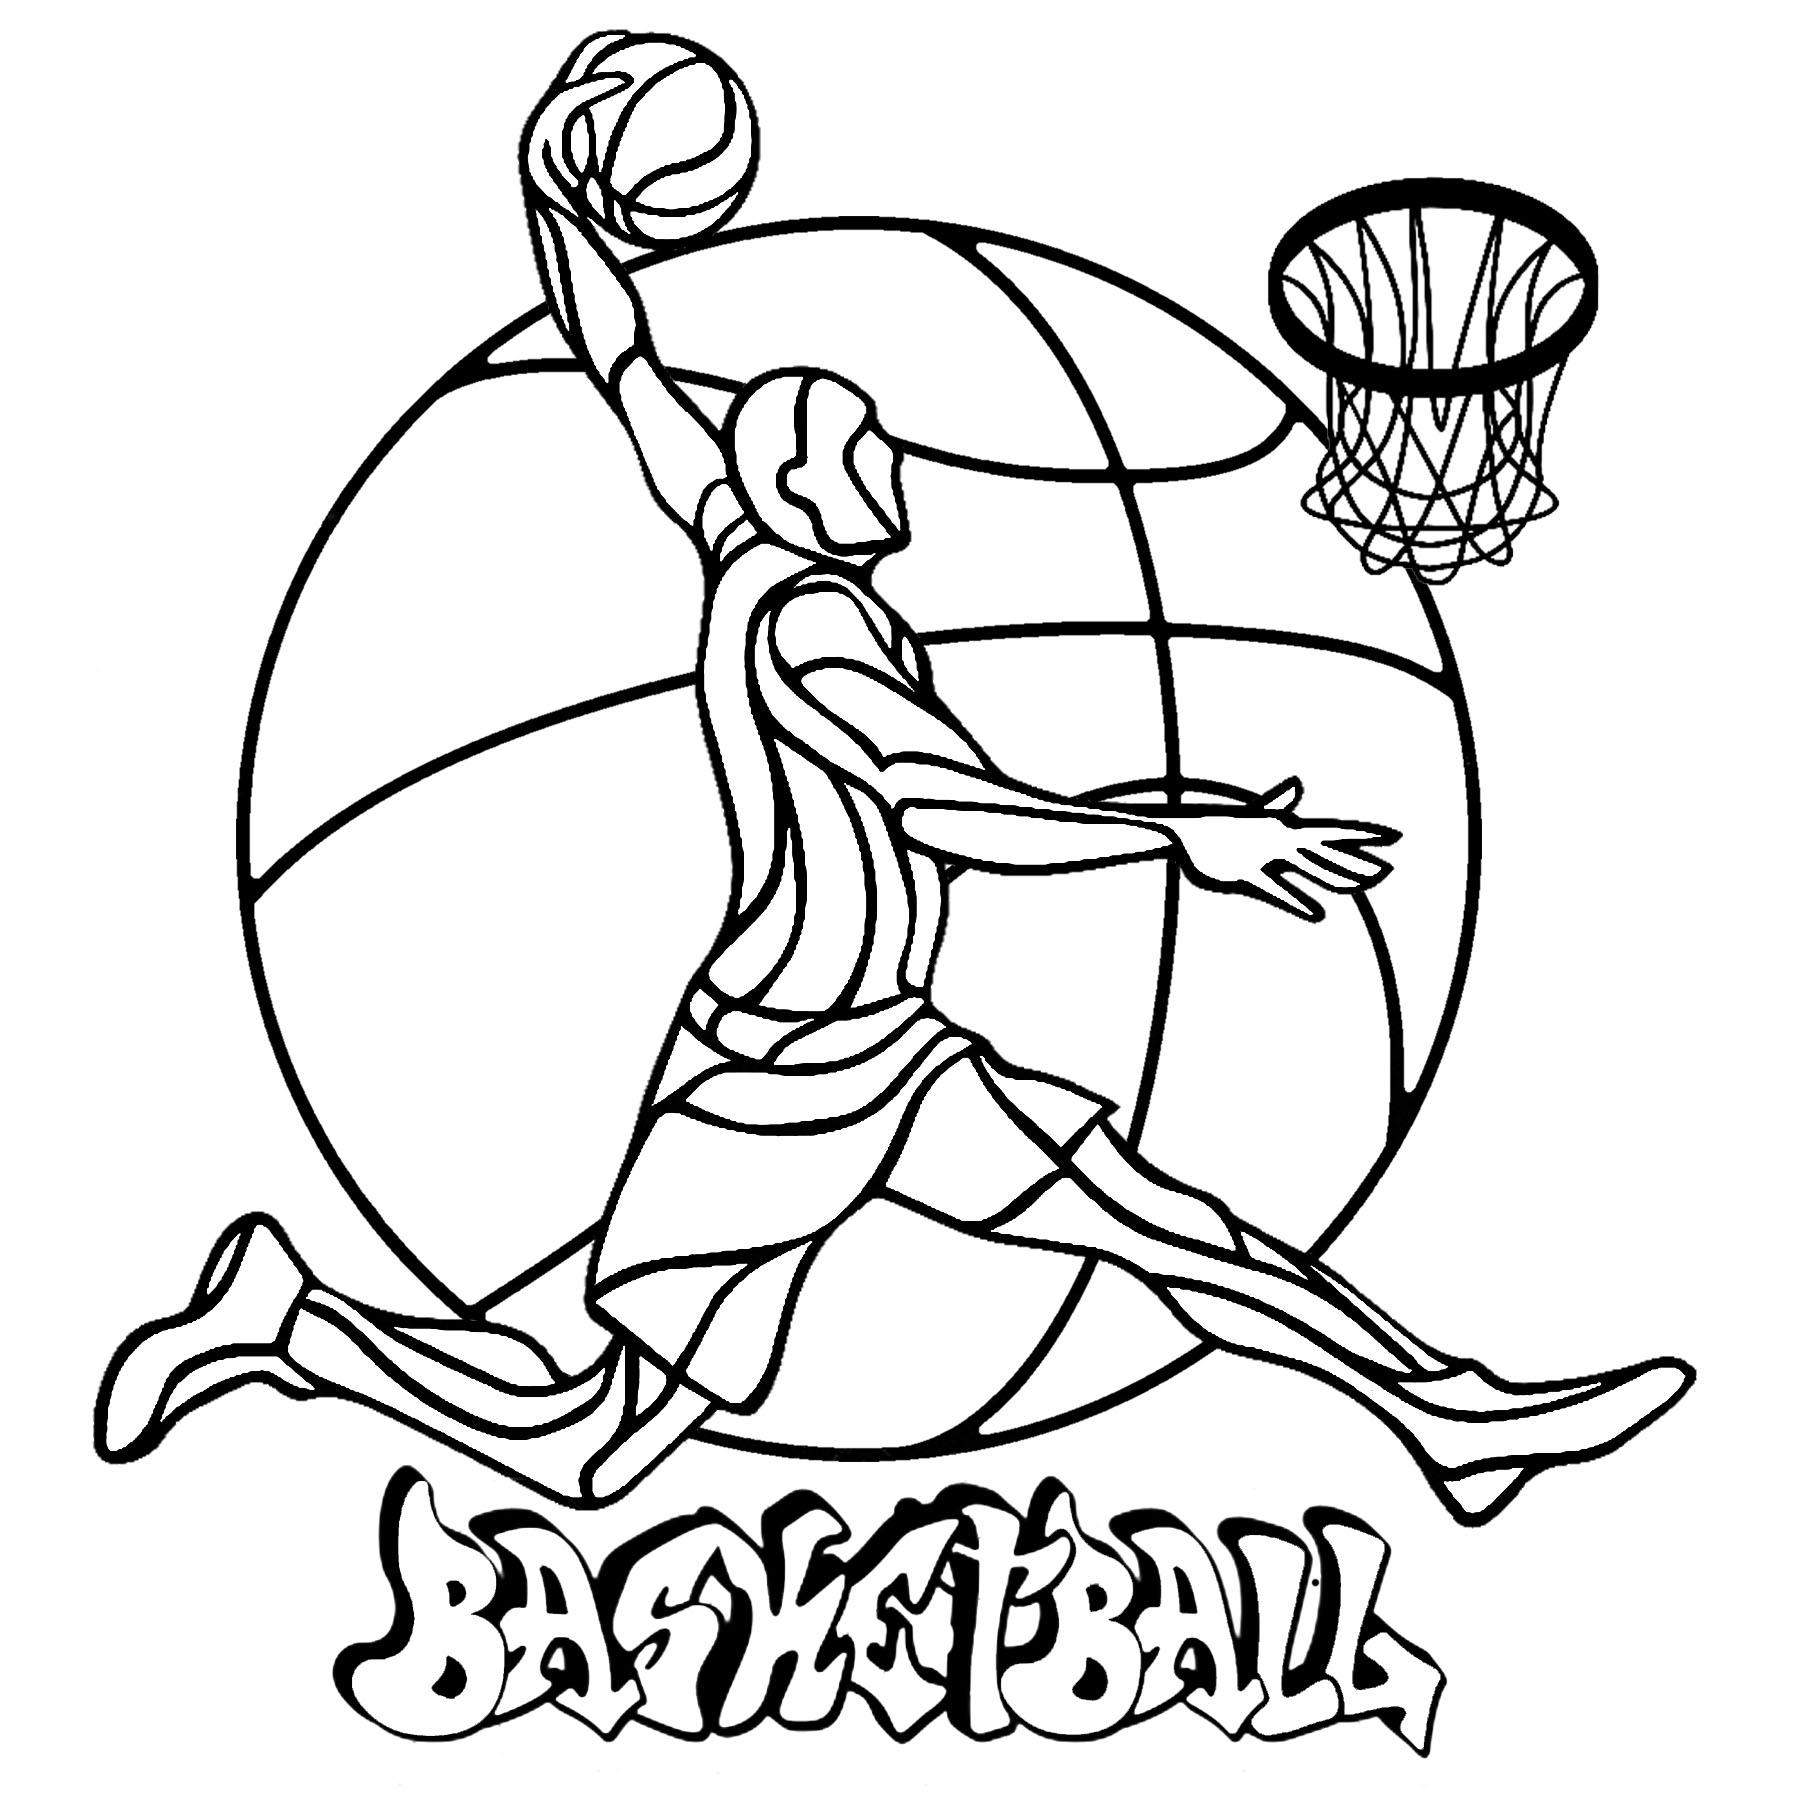 sport coloring pages coloring ville pages coloring sport